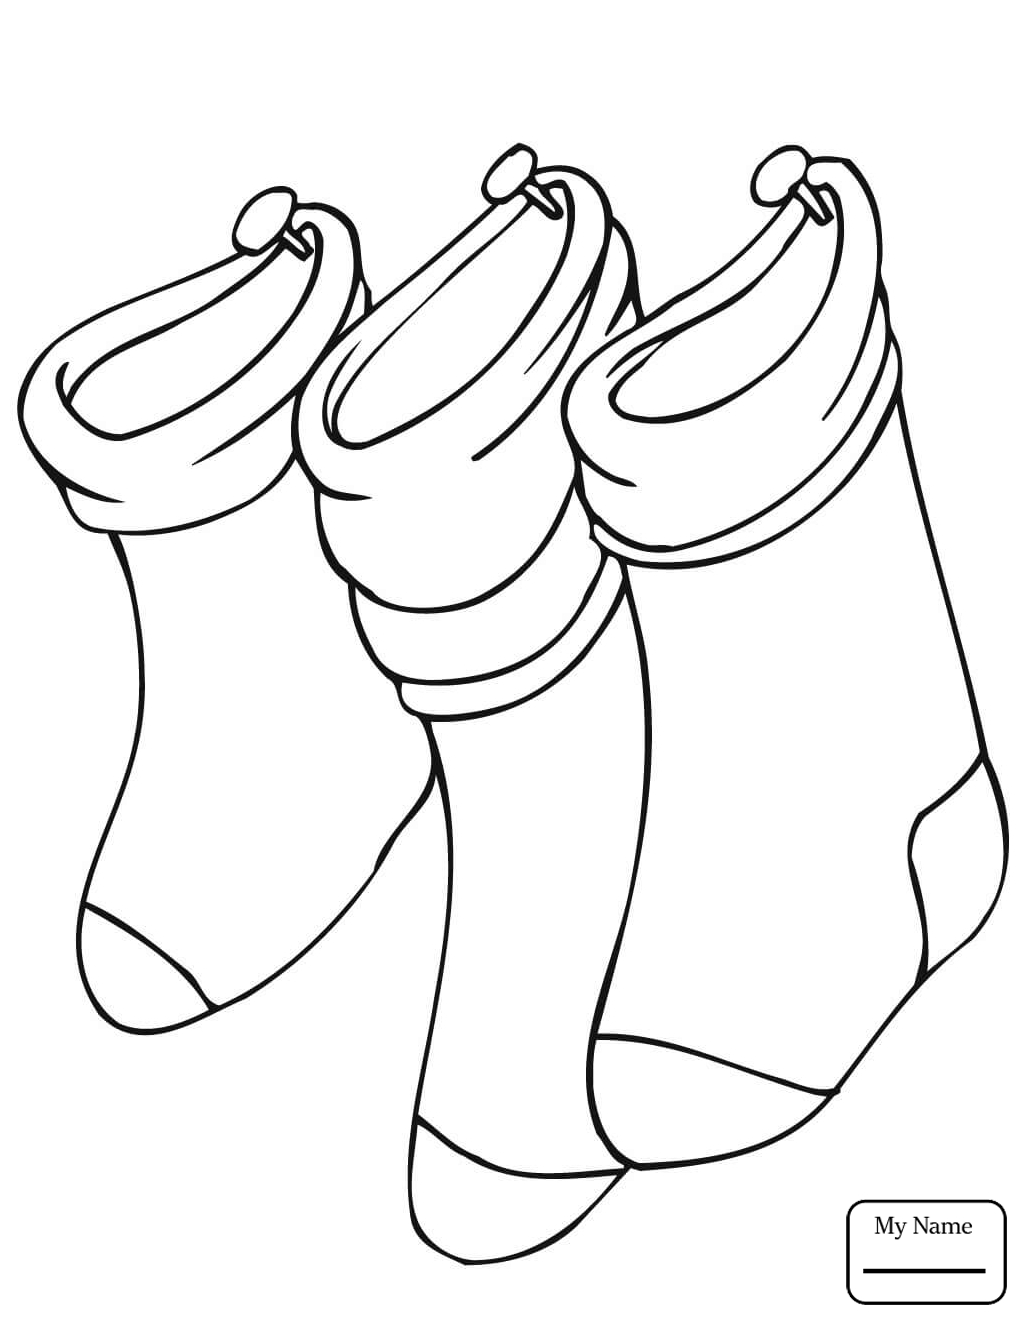 Christmas Stocking Drawing at GetDrawings.com | Free for personal ...